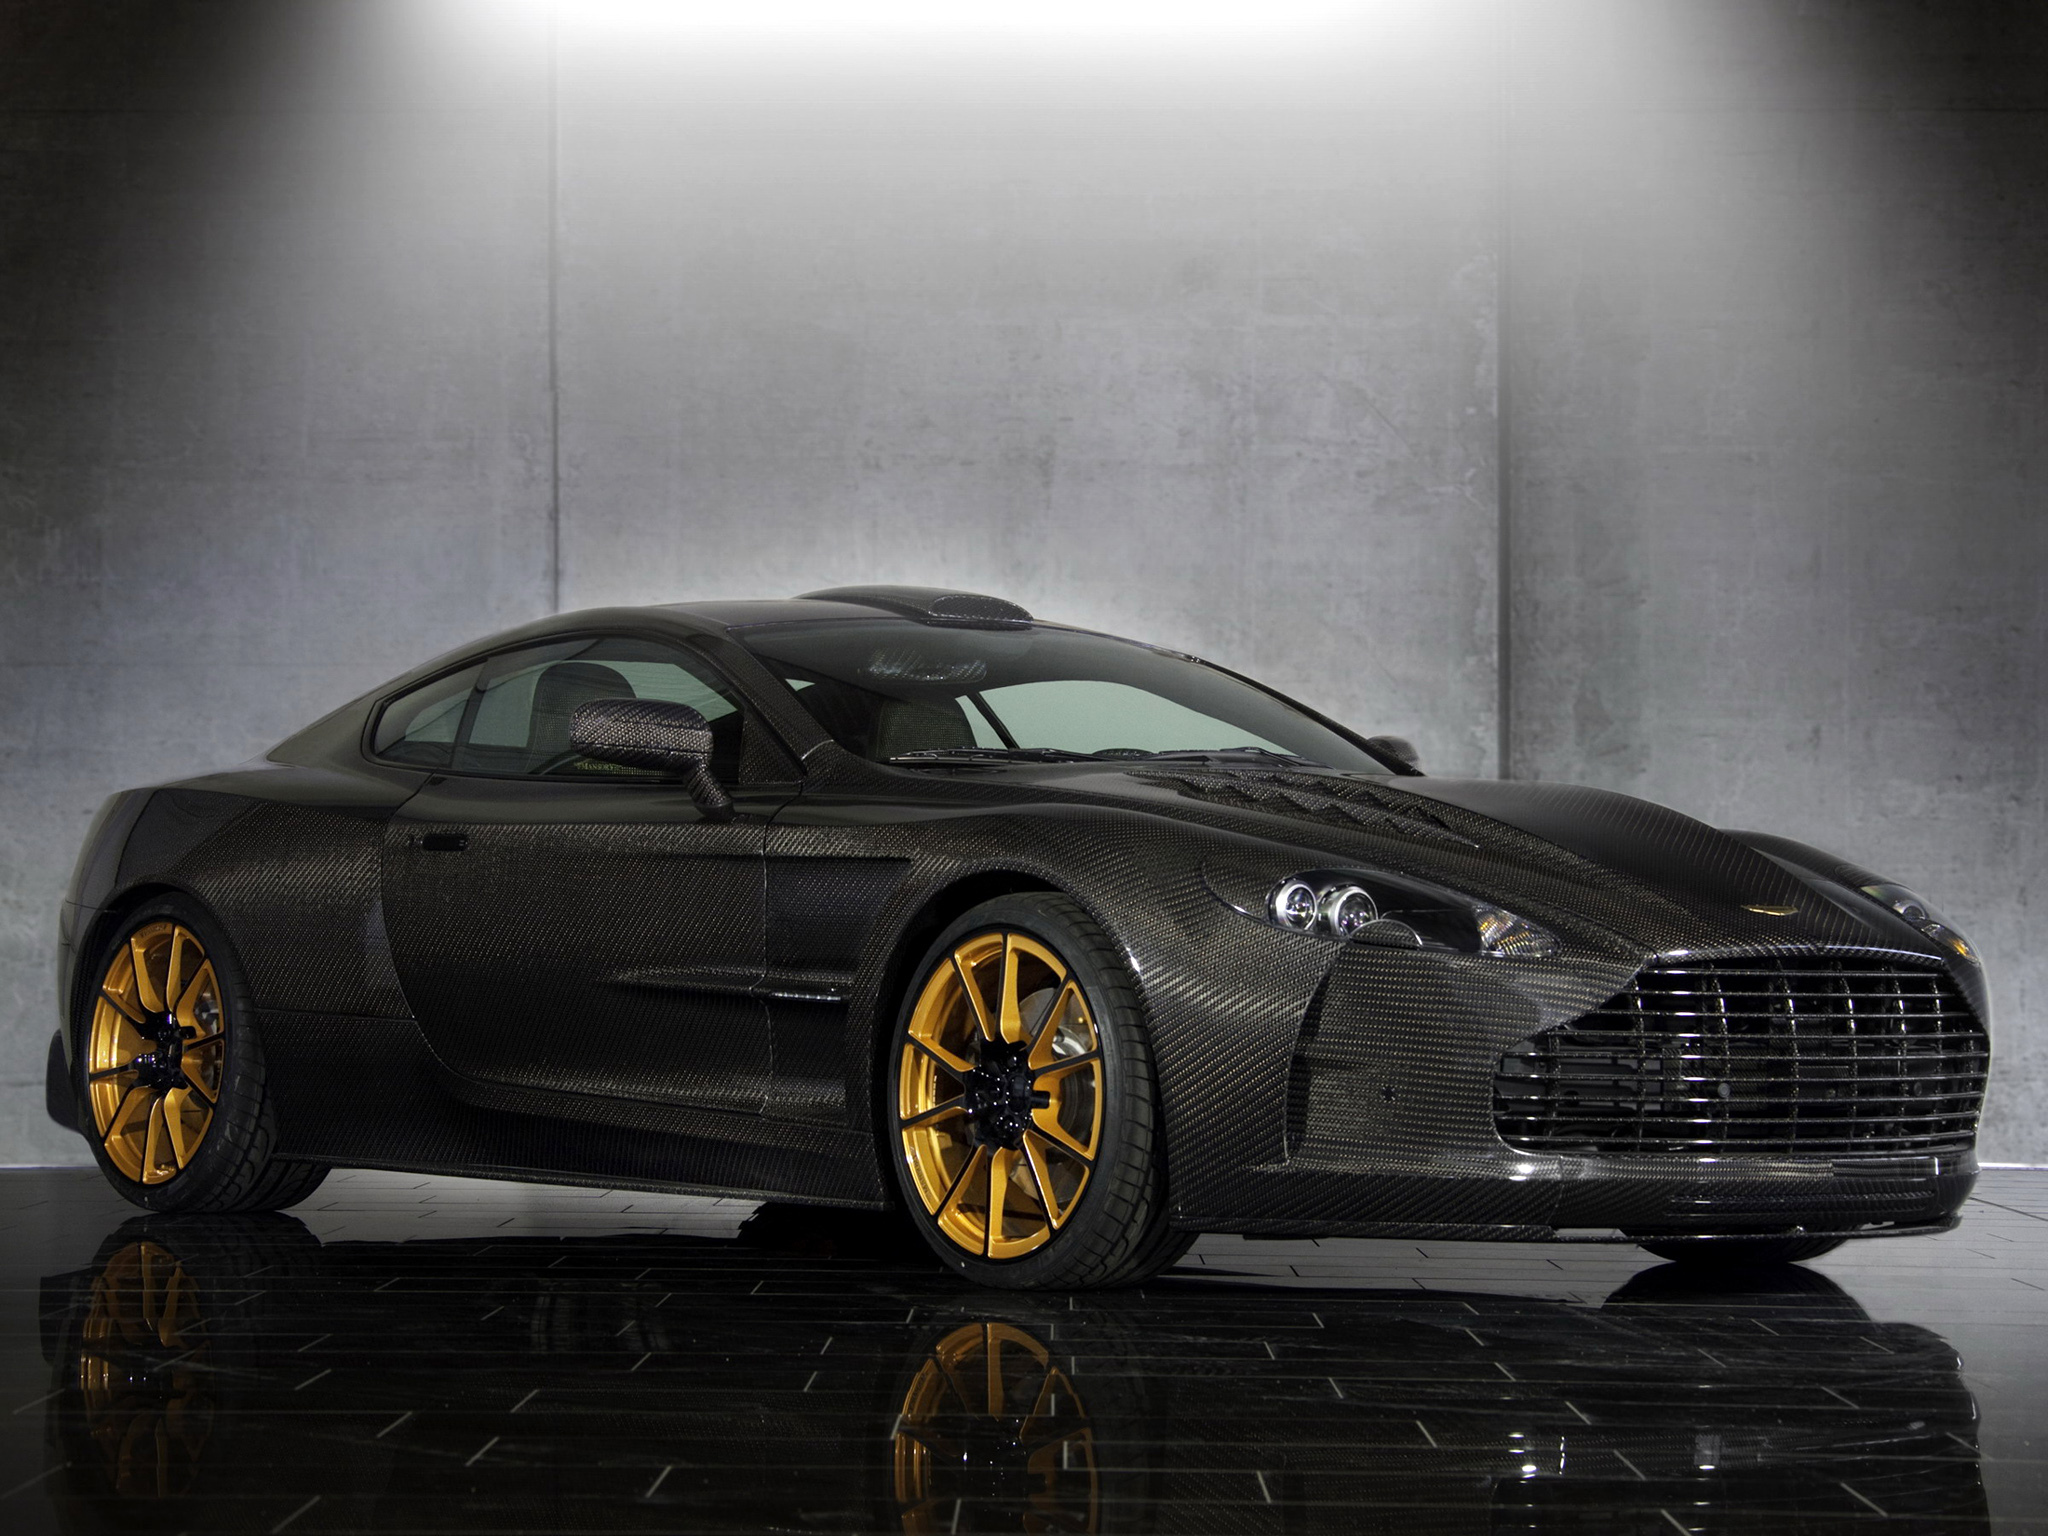 60799 download wallpaper Cars, Side View, Aston Martin Db9, Mansory, Cyrus screensavers and pictures for free